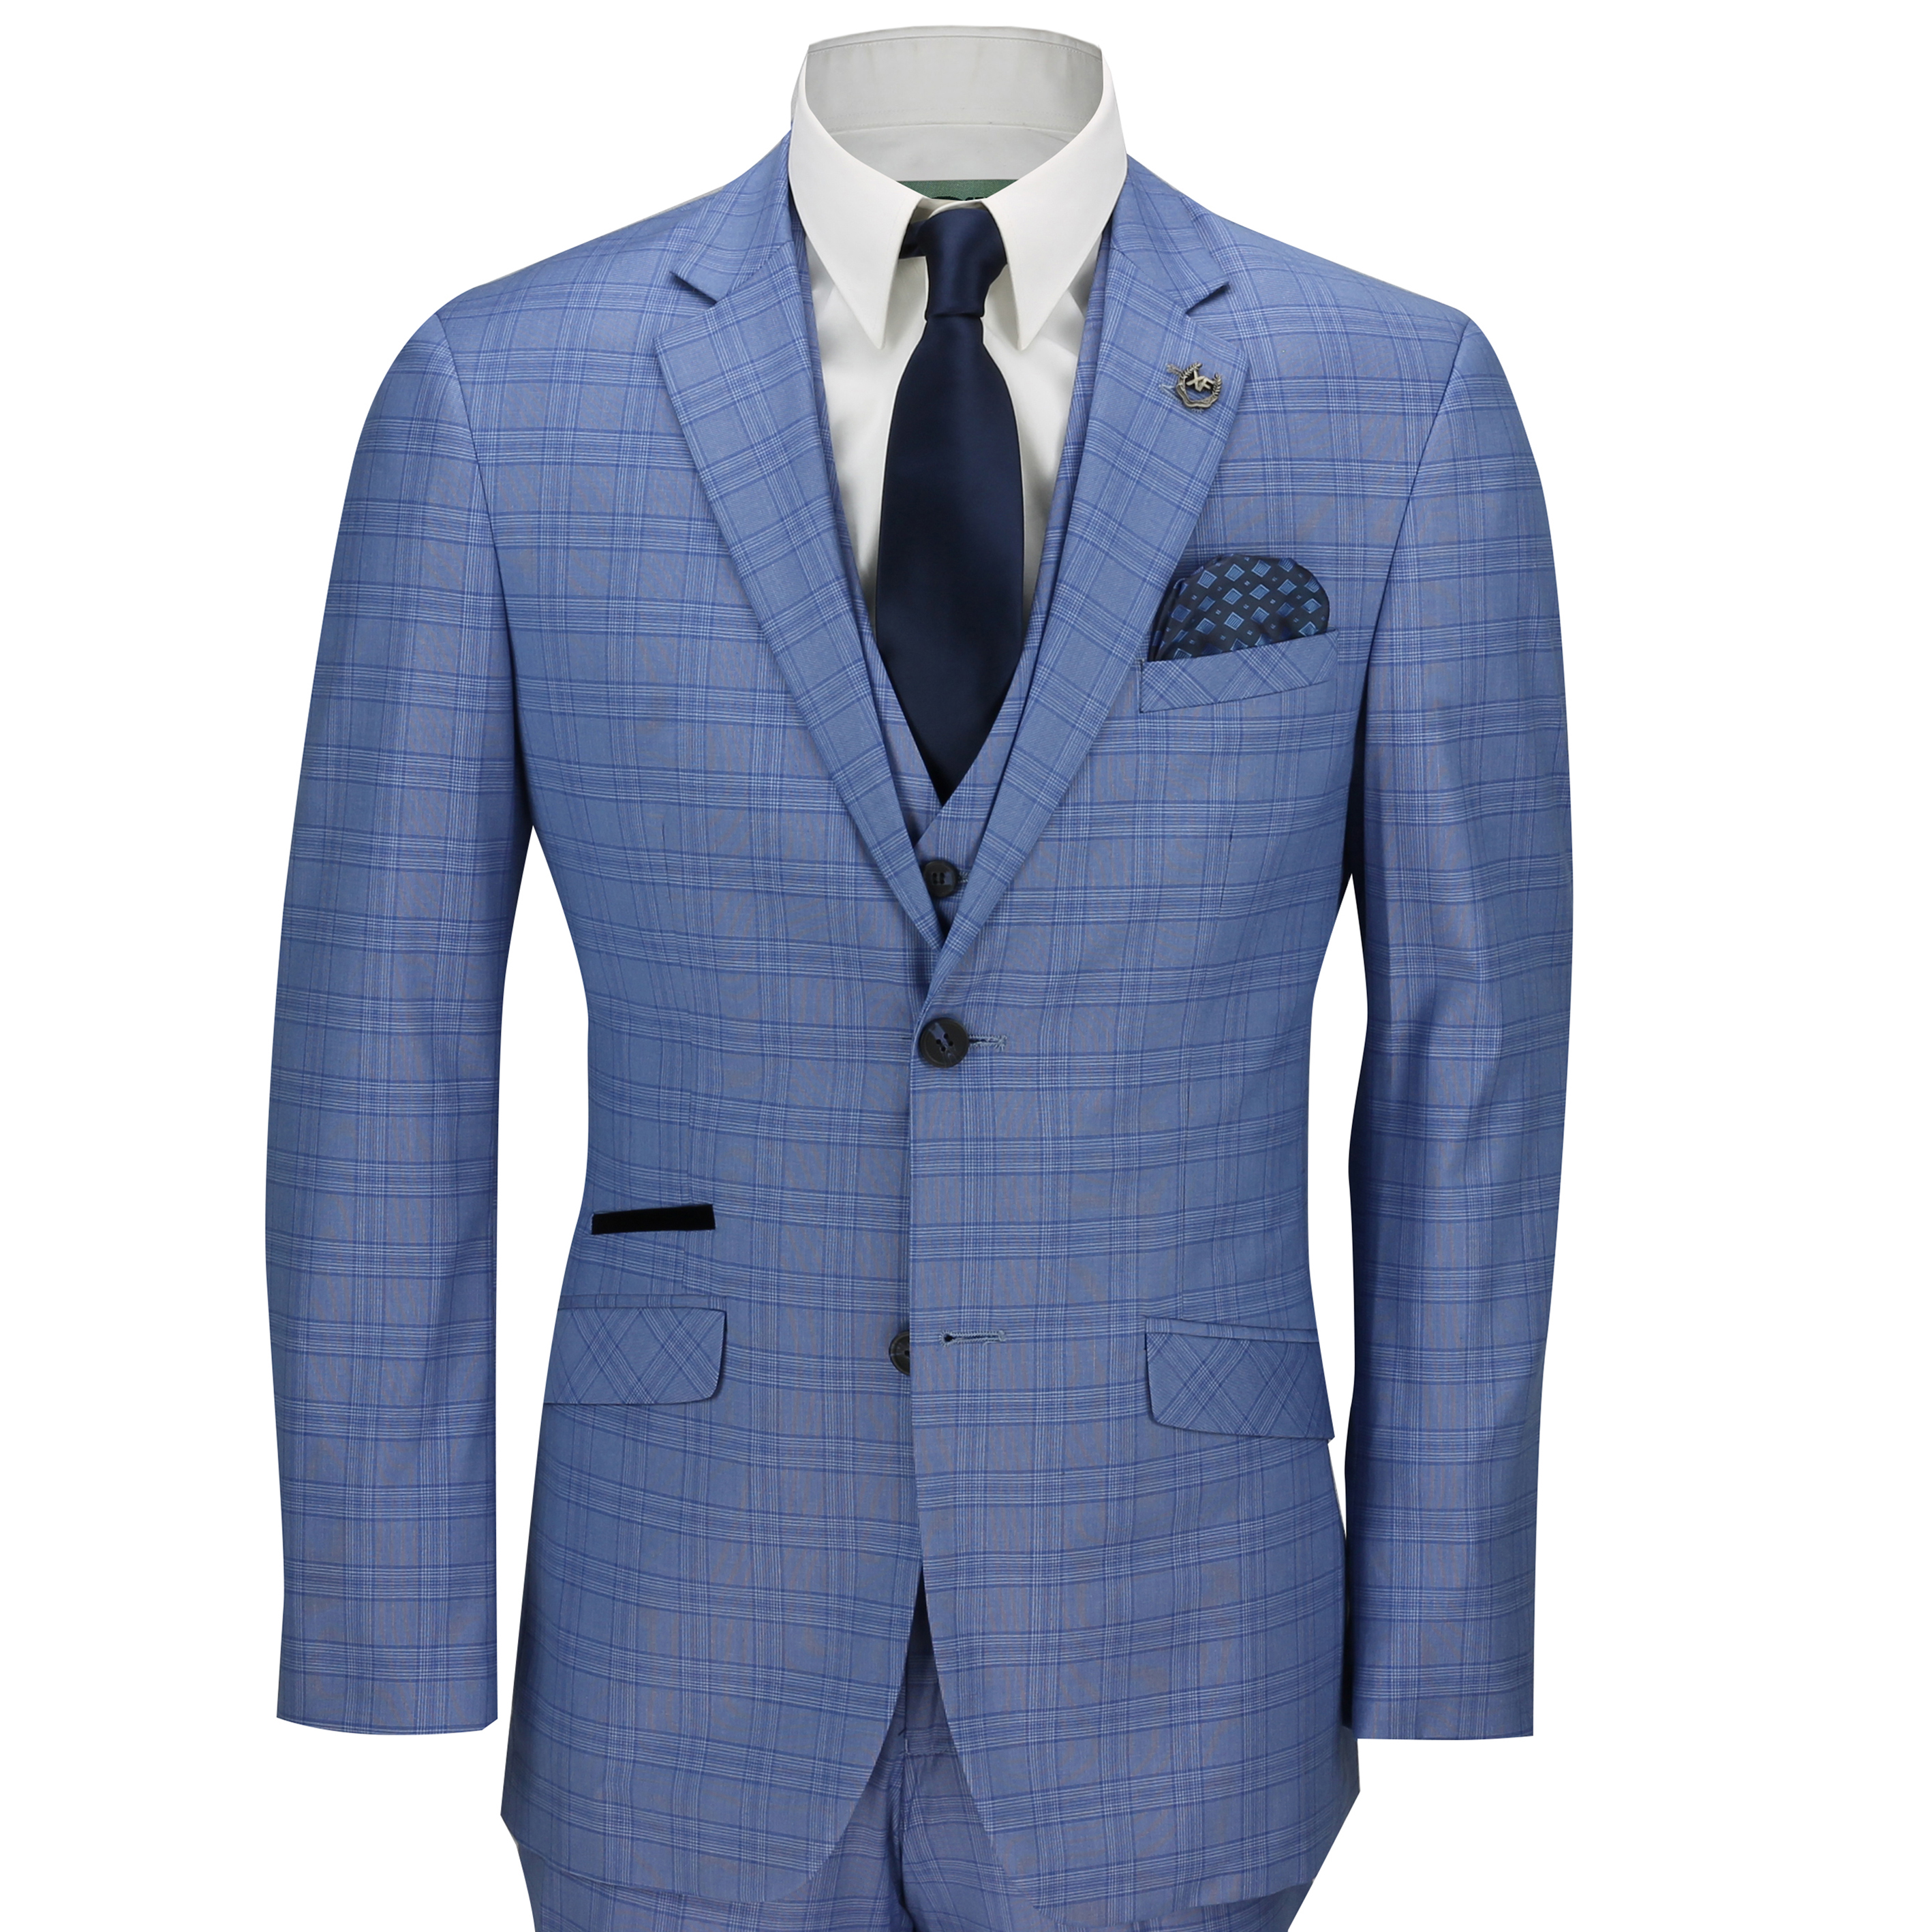 347dab02663 Mens 3 Piece Tailored Fit Blue Prince of Wales Check Smart Vintage Retro  Suit